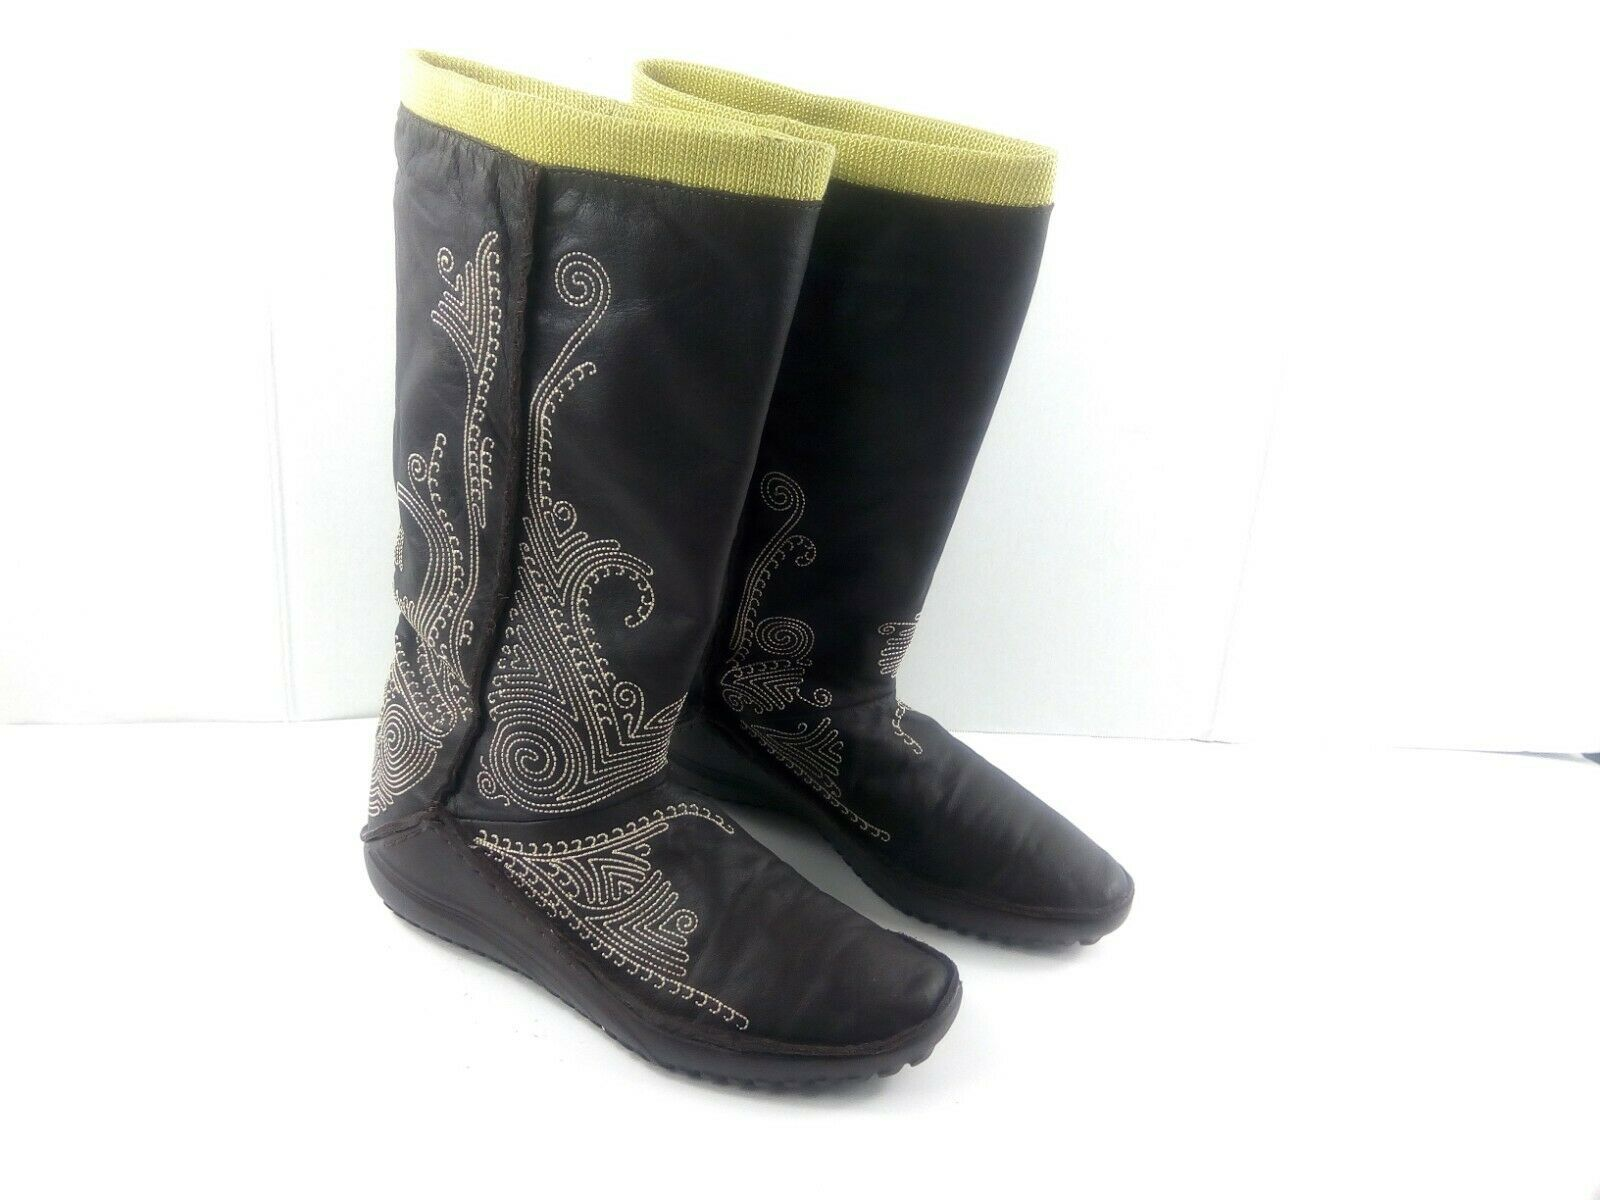 Puma Women's Boots Monsoon Tall Leather Embroidered Brown/Green Booties 7.5 W image 2